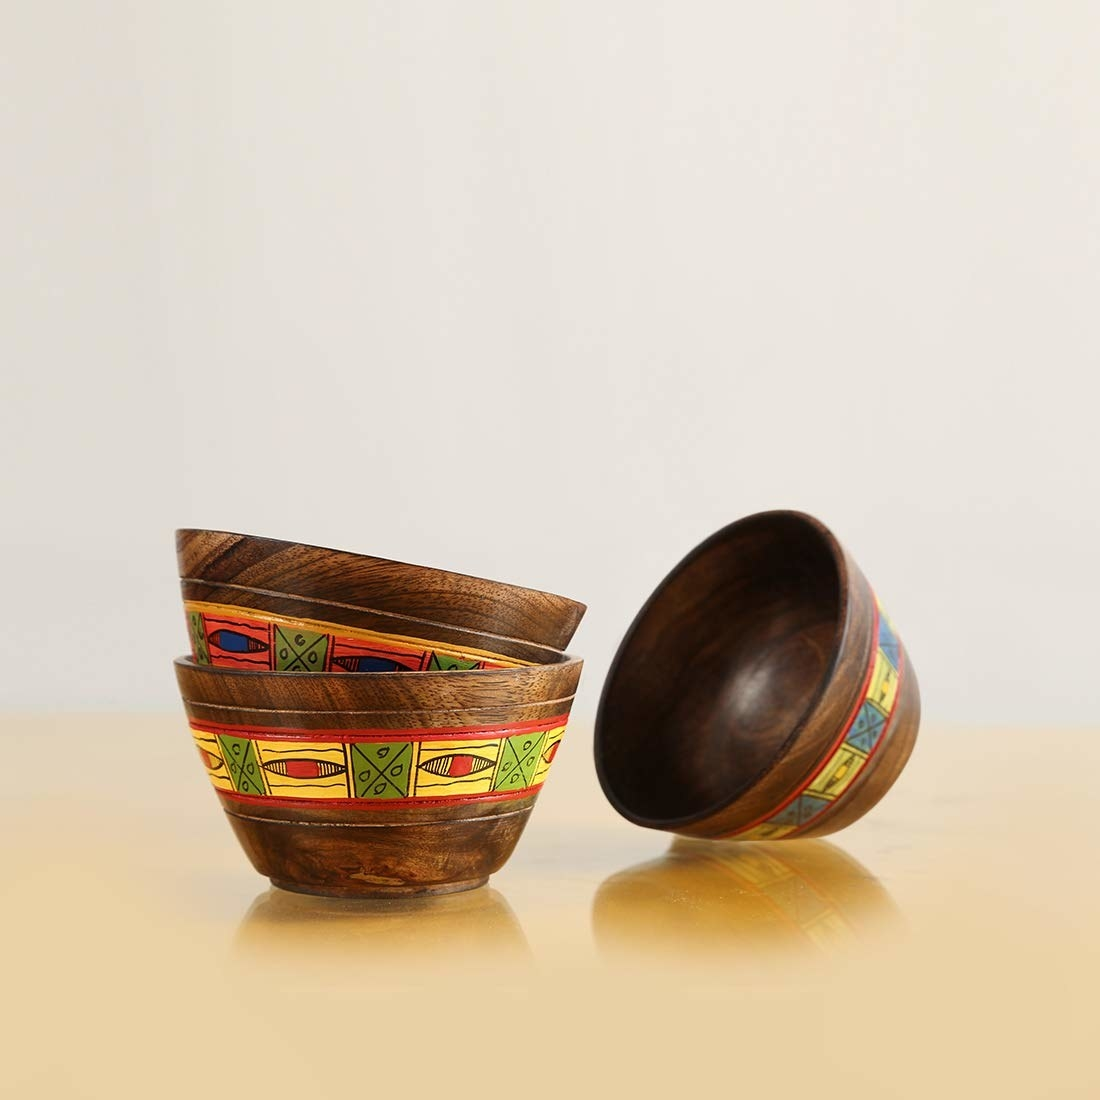 Three wooden bowls with a colourful band across their circumference